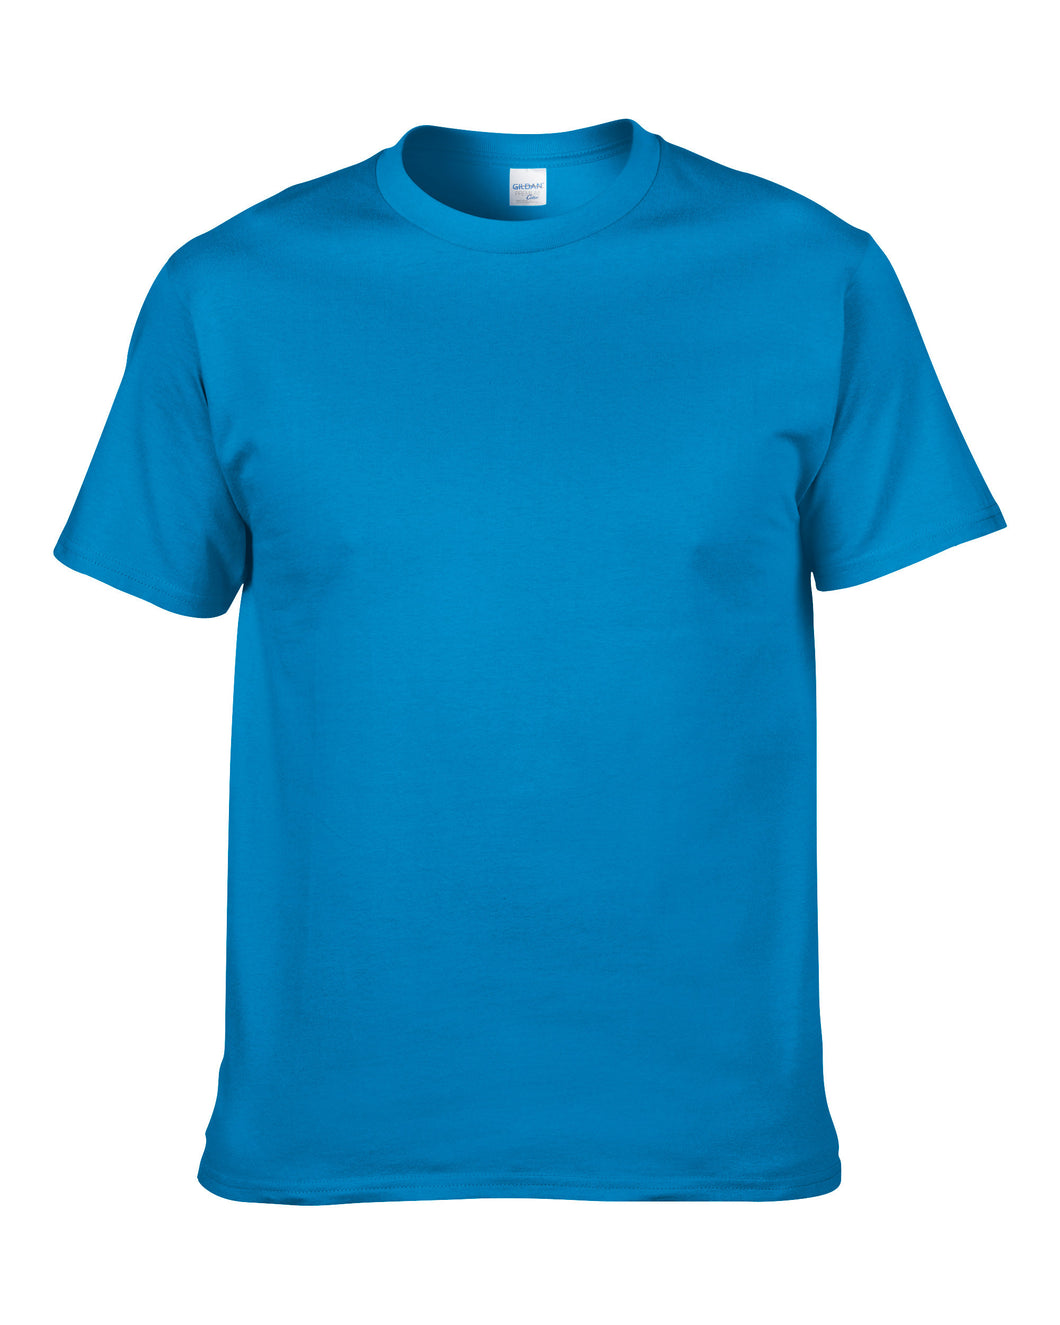 Classic round neck t-shirt in Gem Blue